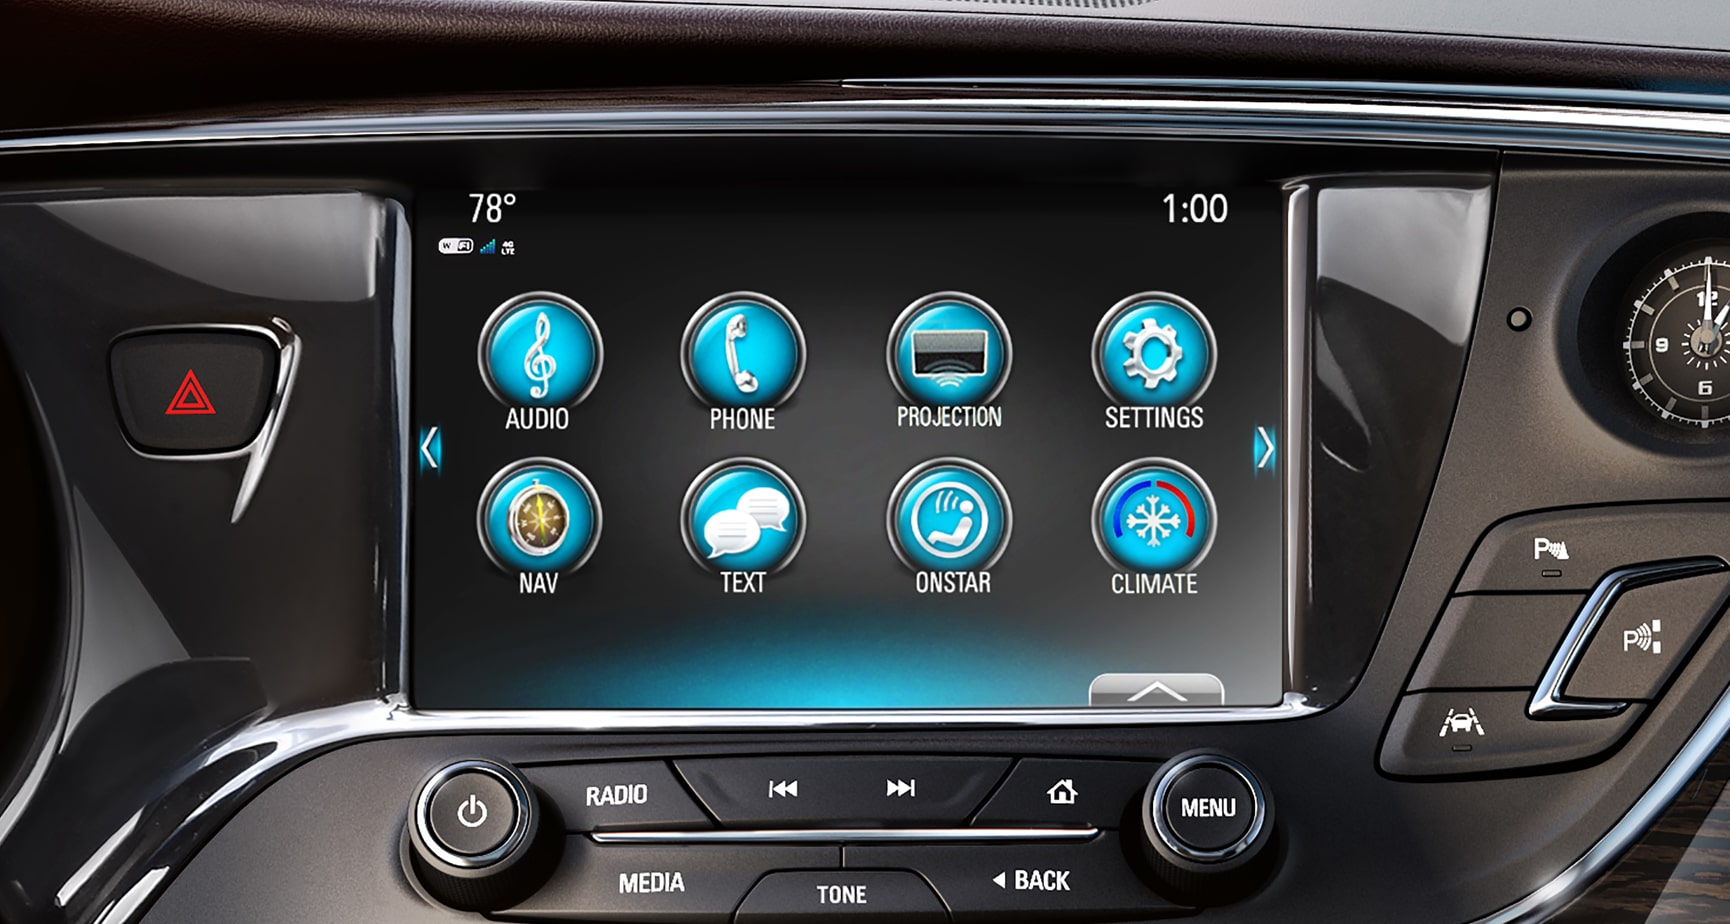 buick owners information buick owner center buick rh buick com buick encore infotainment manual buick encore infotainment manual 2015